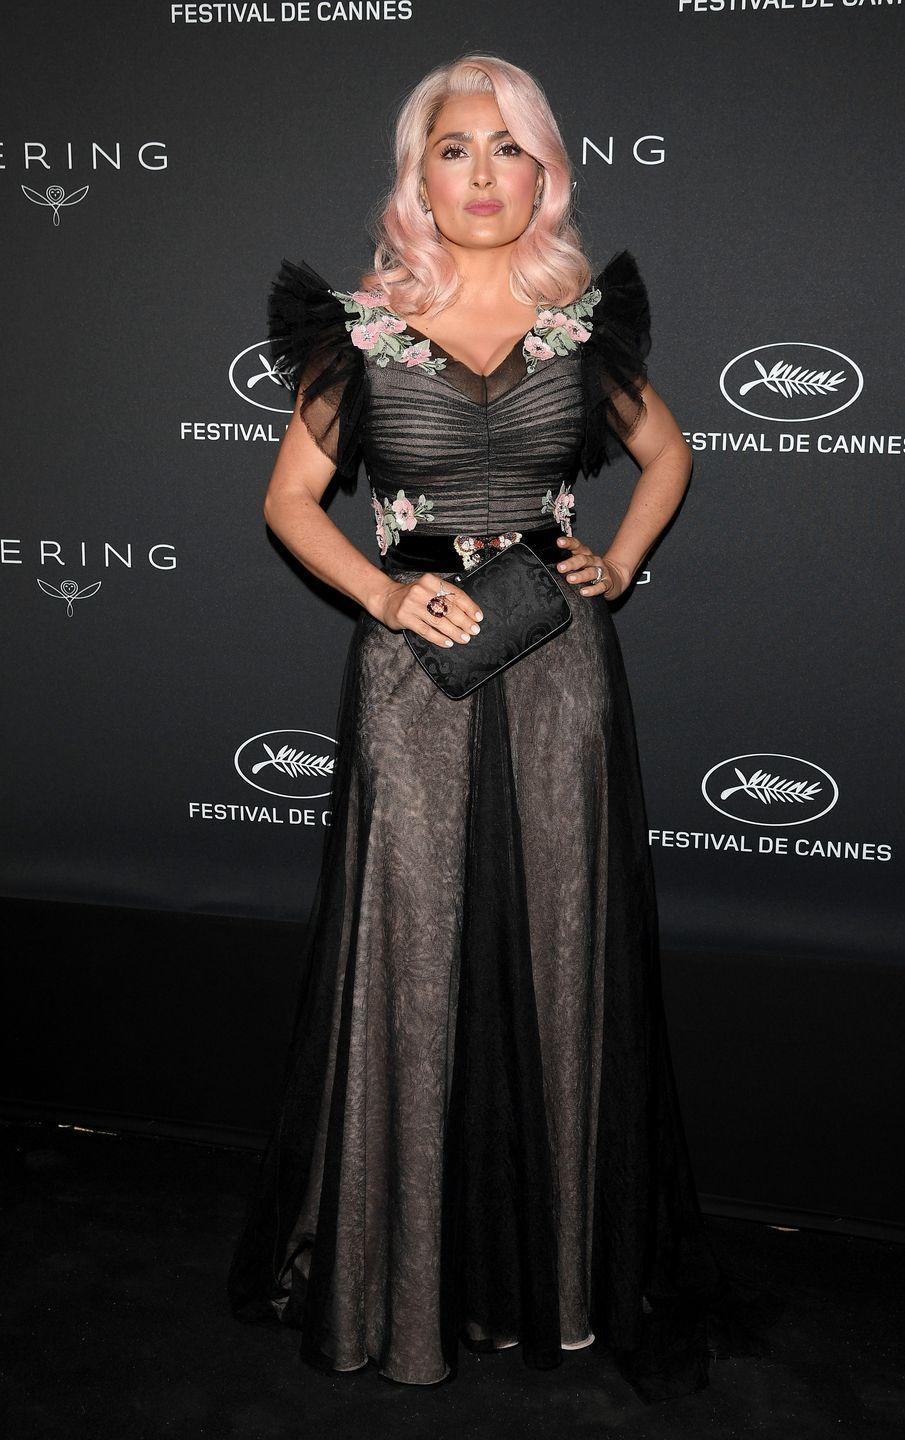 <p>If you're aiming for a lighter shade of peach, take a page out of <strong>Salma Hayek's</strong> book. The actress rocked a platinum-based blush shade.</p>